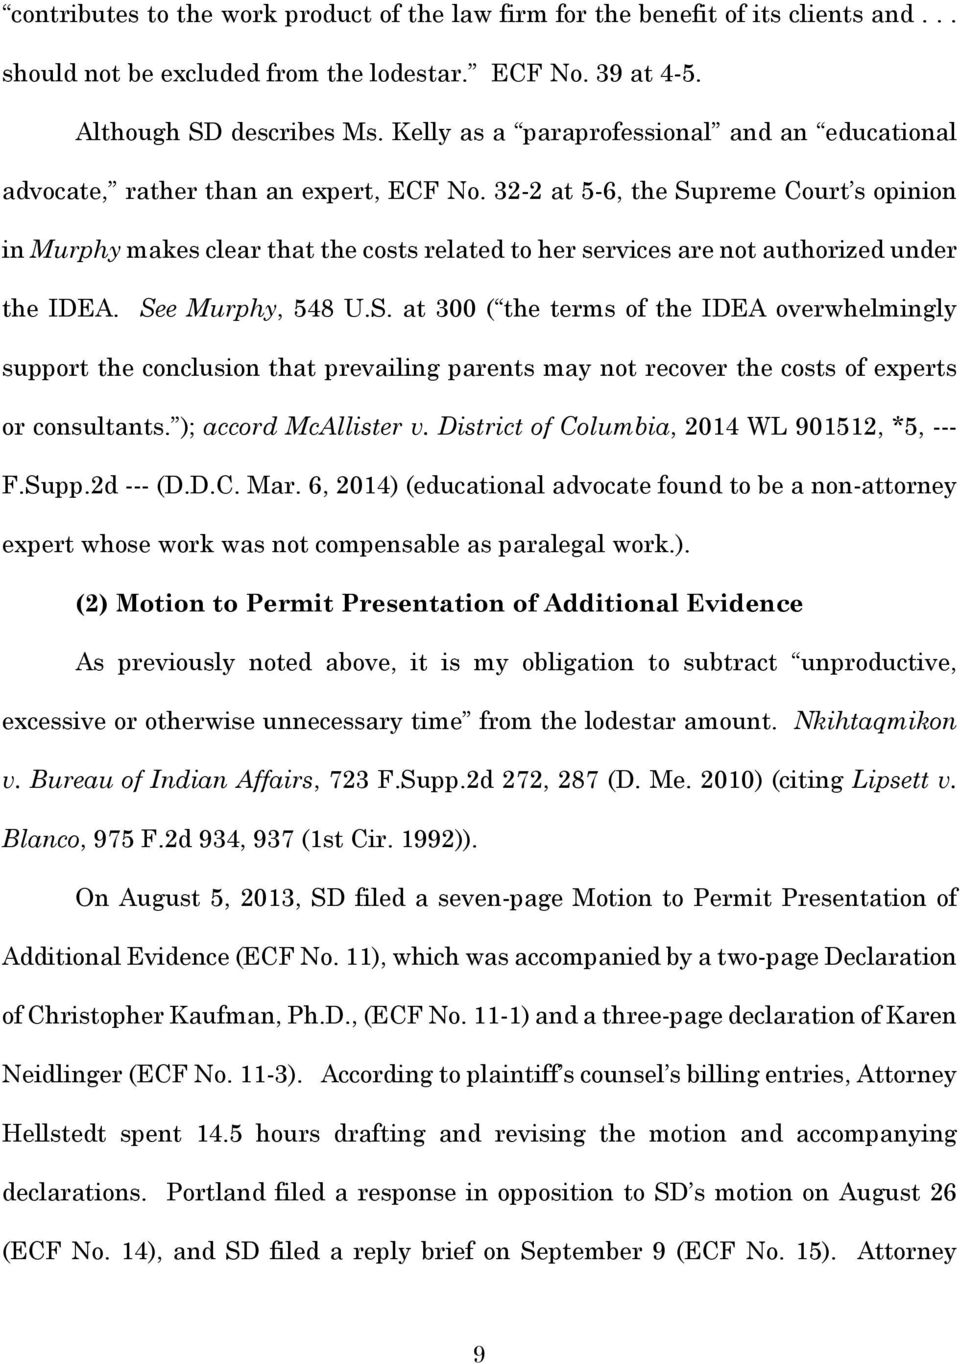 32-2 at 5-6, the Supreme Court s opinion in Murphy makes clear that the costs related to her services are not authorized under the IDEA. See Murphy, 548 U.S. at 300 ( the terms of the IDEA overwhelmingly support the conclusion that prevailing parents may not recover the costs of experts or consultants.